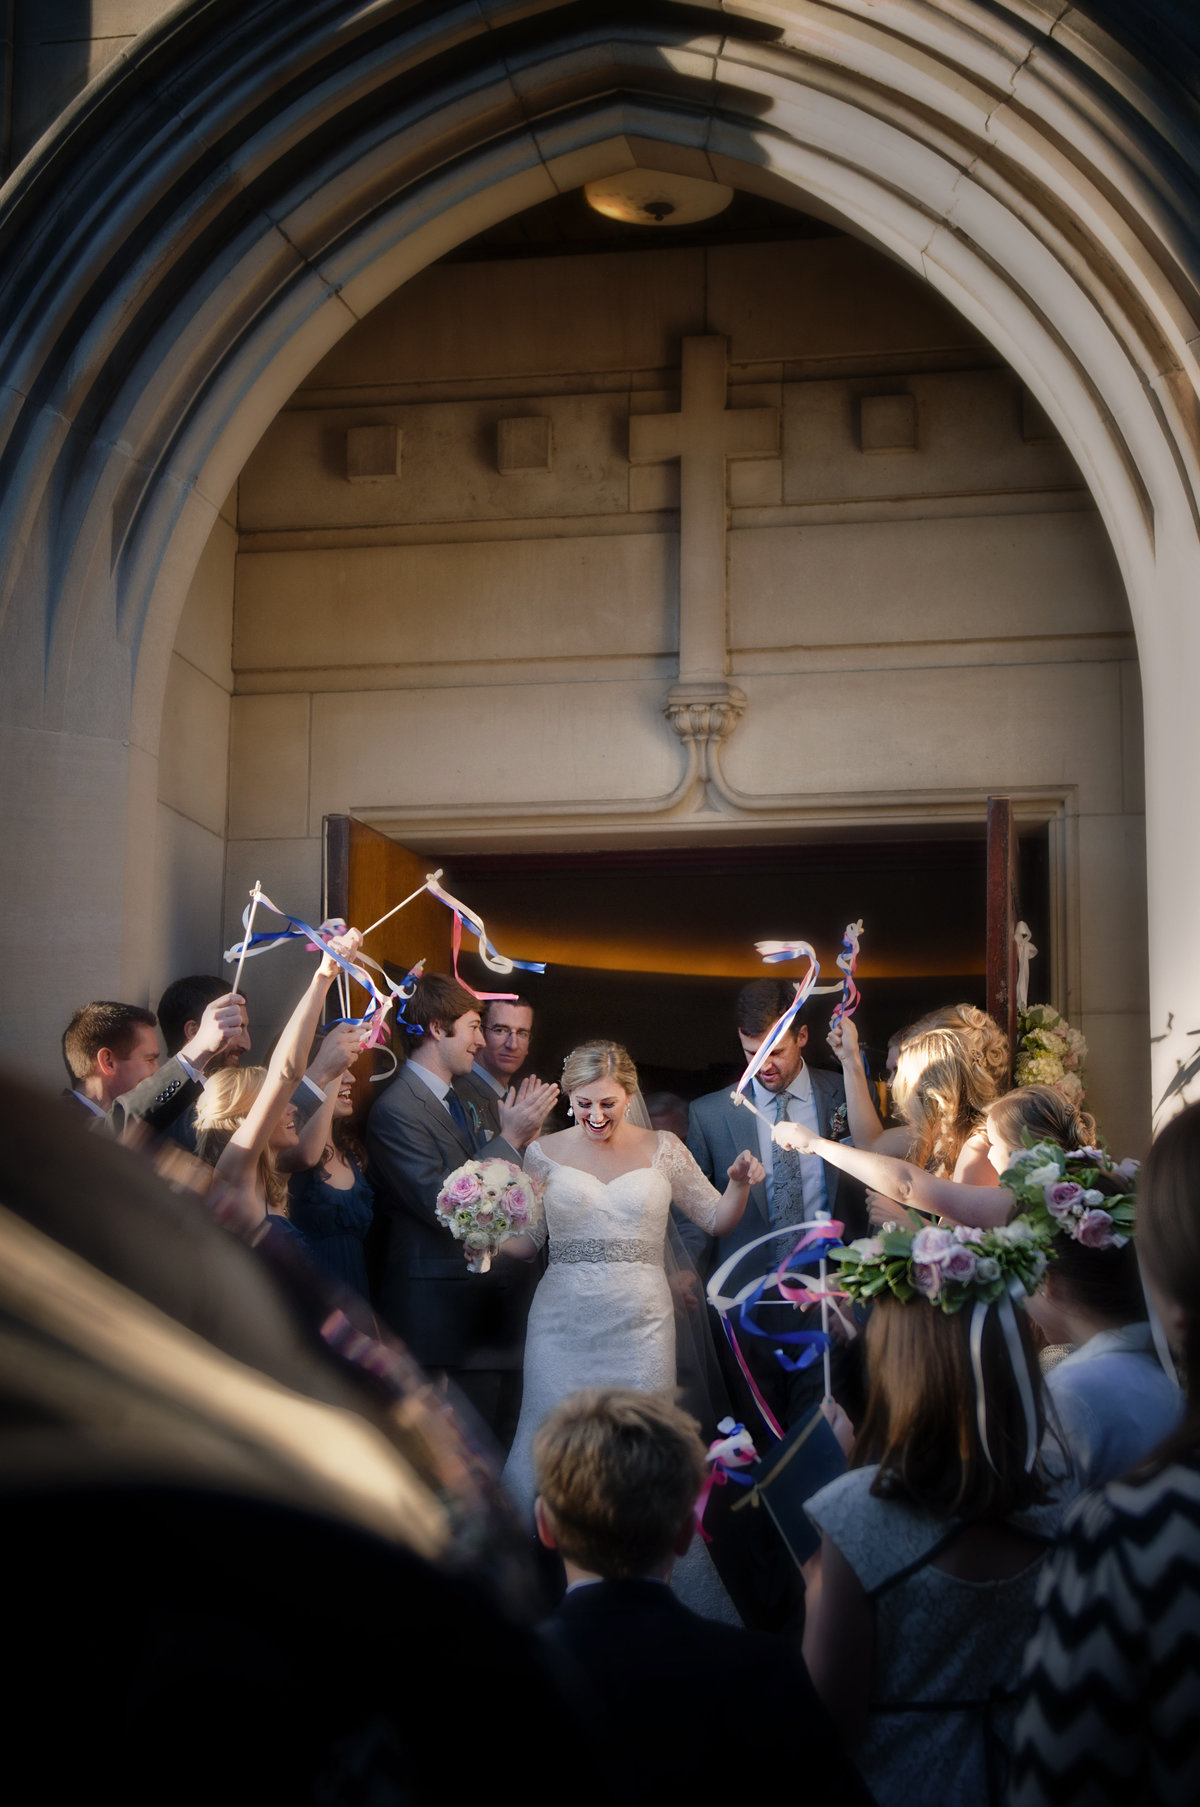 DC Church Wedding, Washington DC Church Wedding Photographer, Erin Tetterton Photography